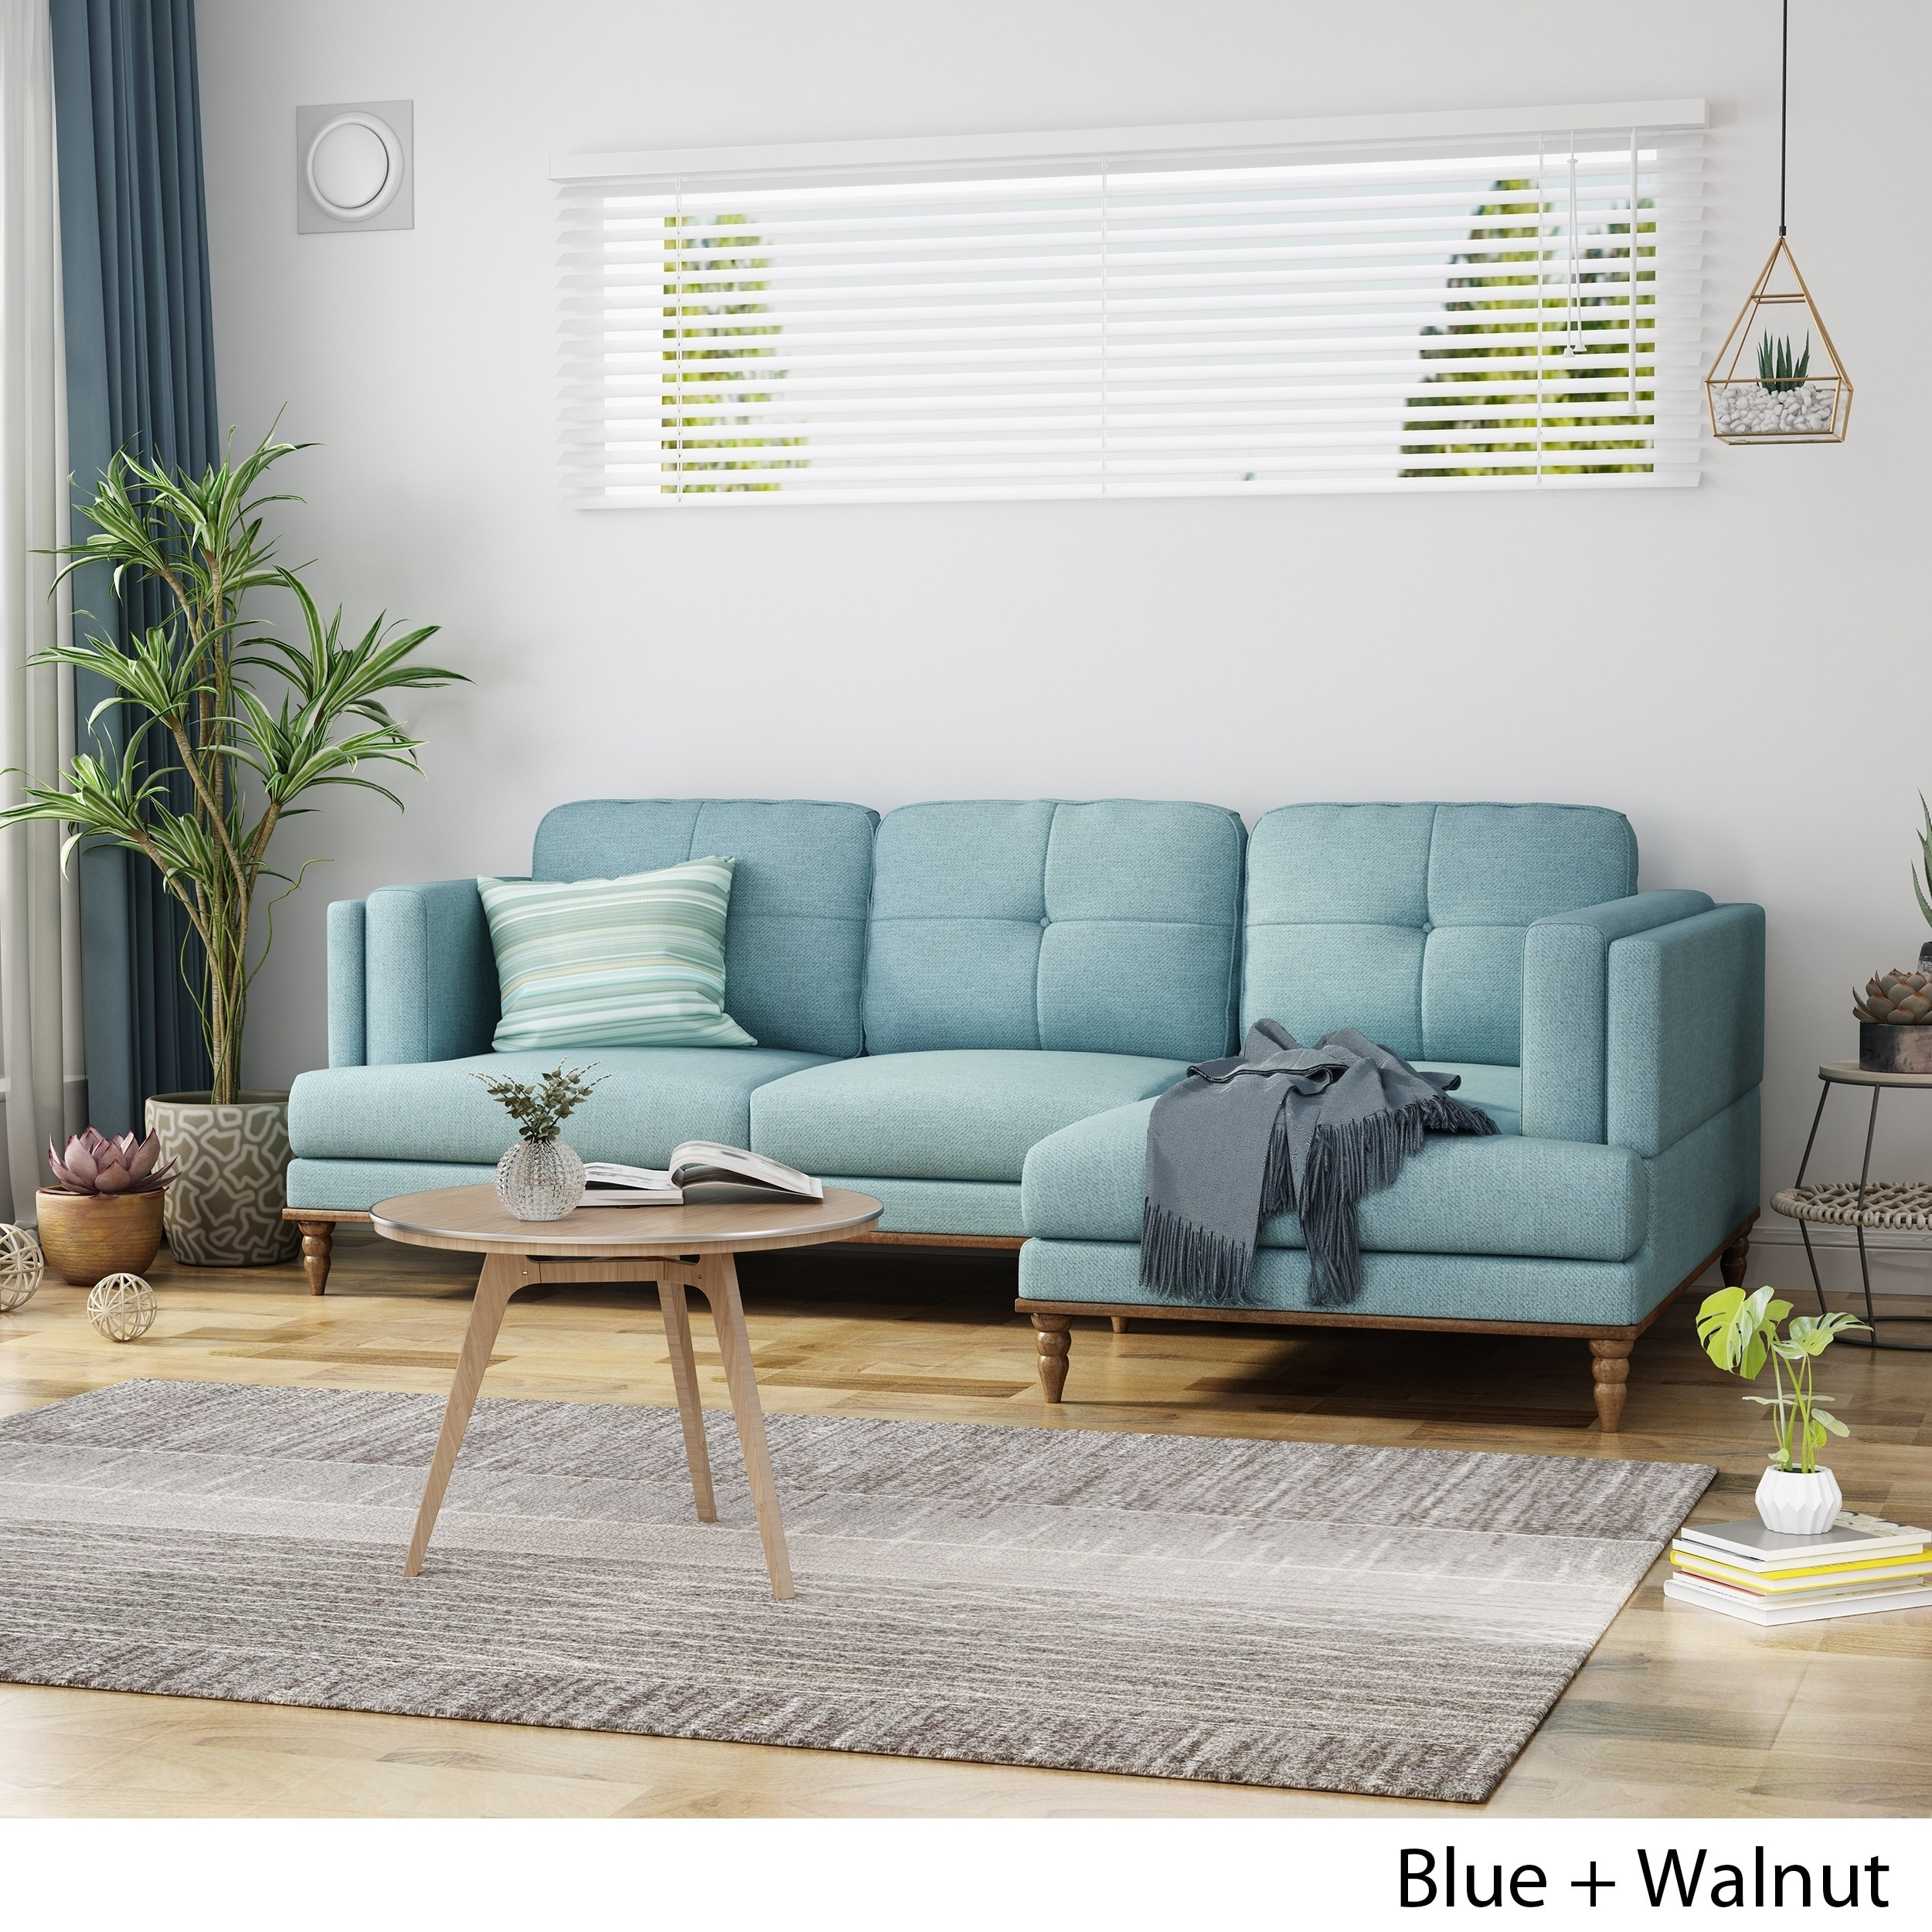 Shop Black Friday Deals On Hollyhock Contemporary Button Tufted Upholstered 3 Seater Chaise Lounge Sofa Set With Turned Legs By Christopher Knight Home Overstock 23057845 Walnut Blue Cushion